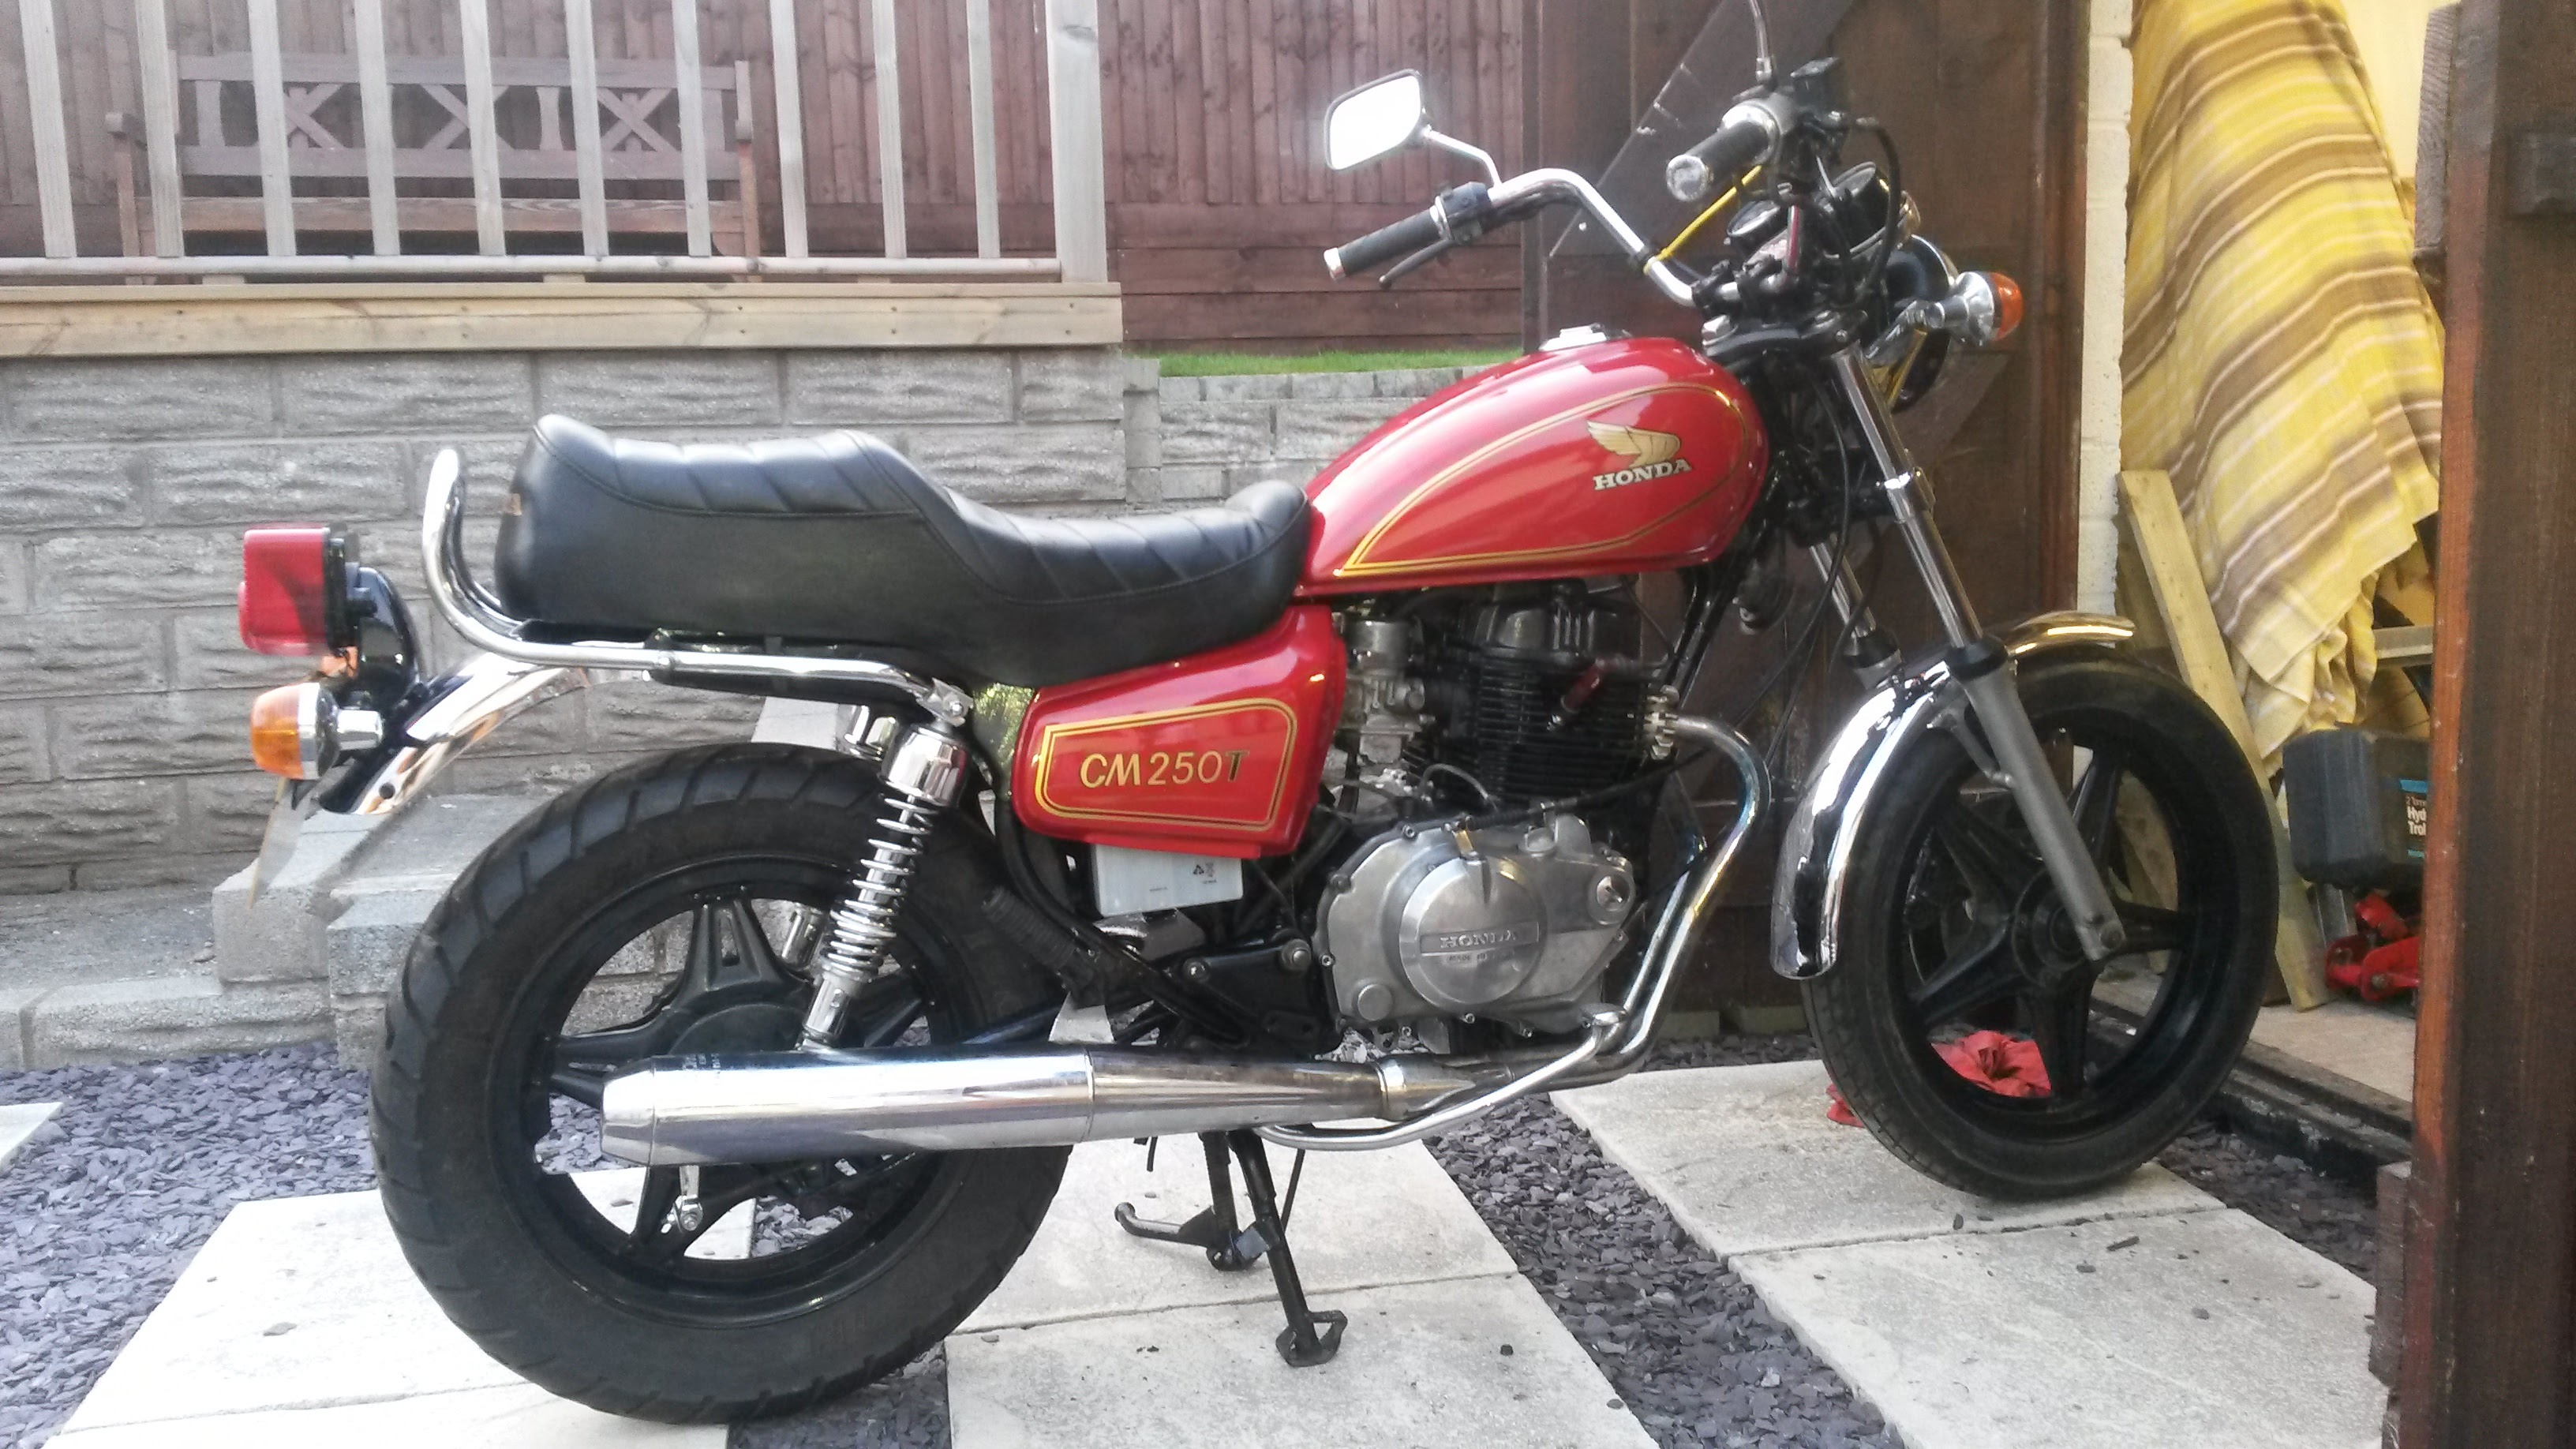 Admirable Honda Cm250C Wikipedia Wiring Digital Resources Indicompassionincorg